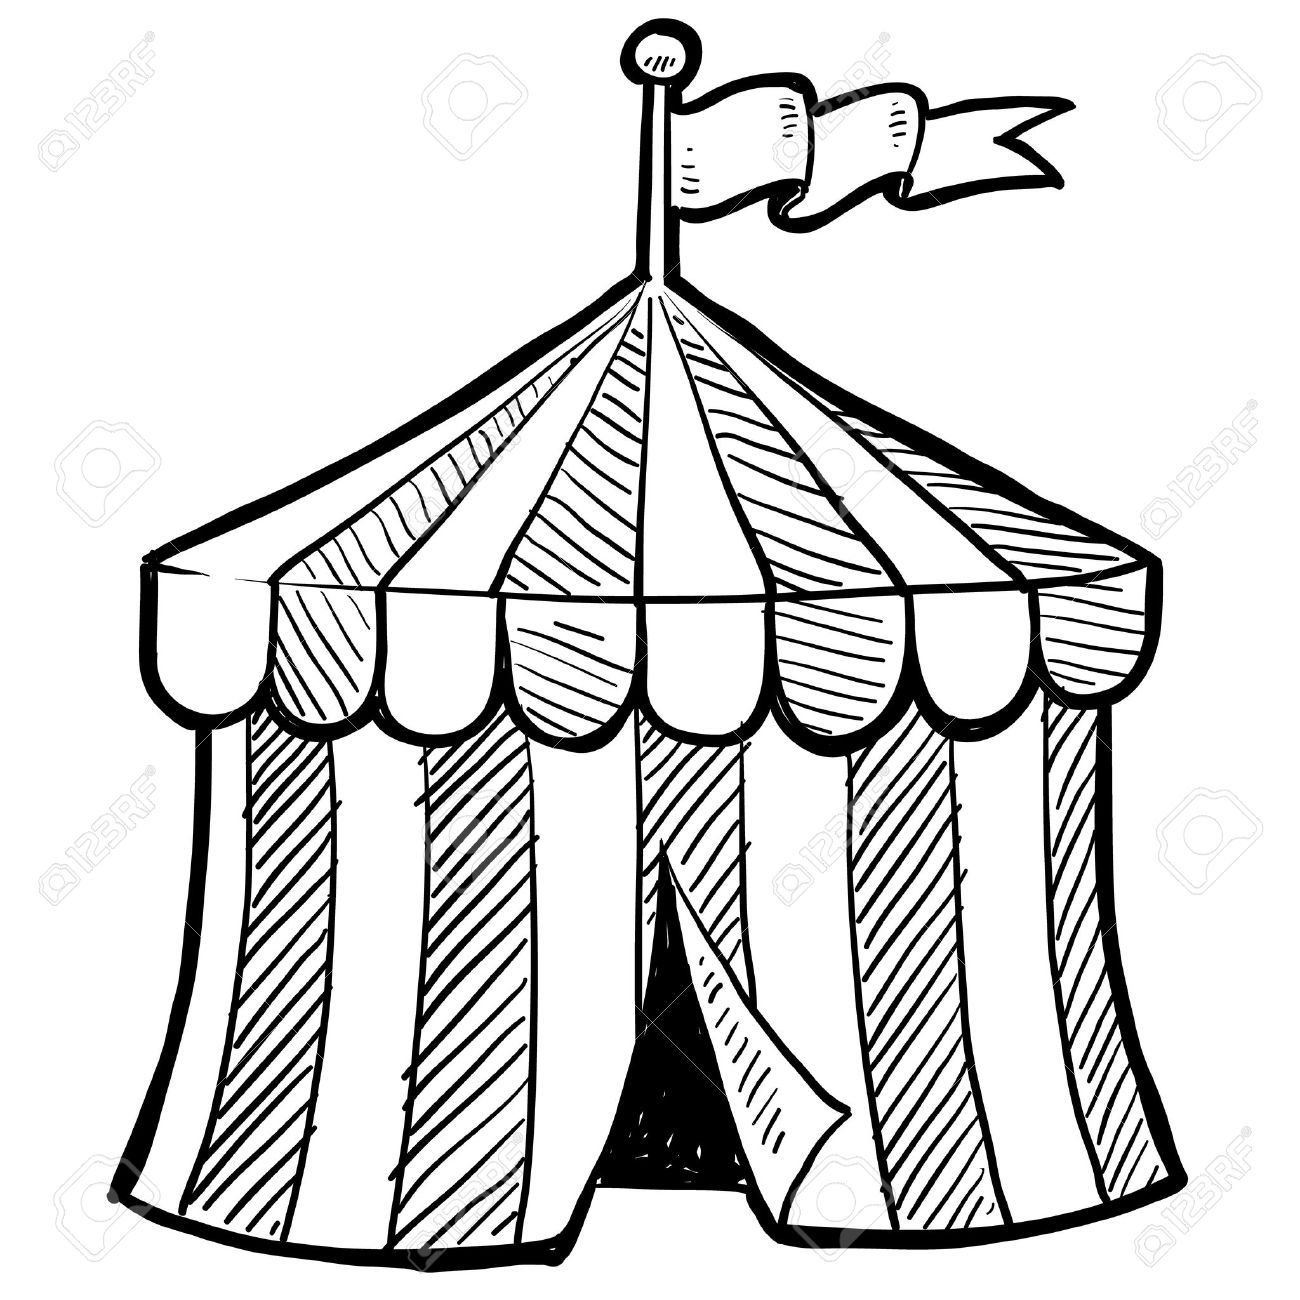 tent clipart black and white. doodle style circus tent in vector format stock 14460764 clipart black and white